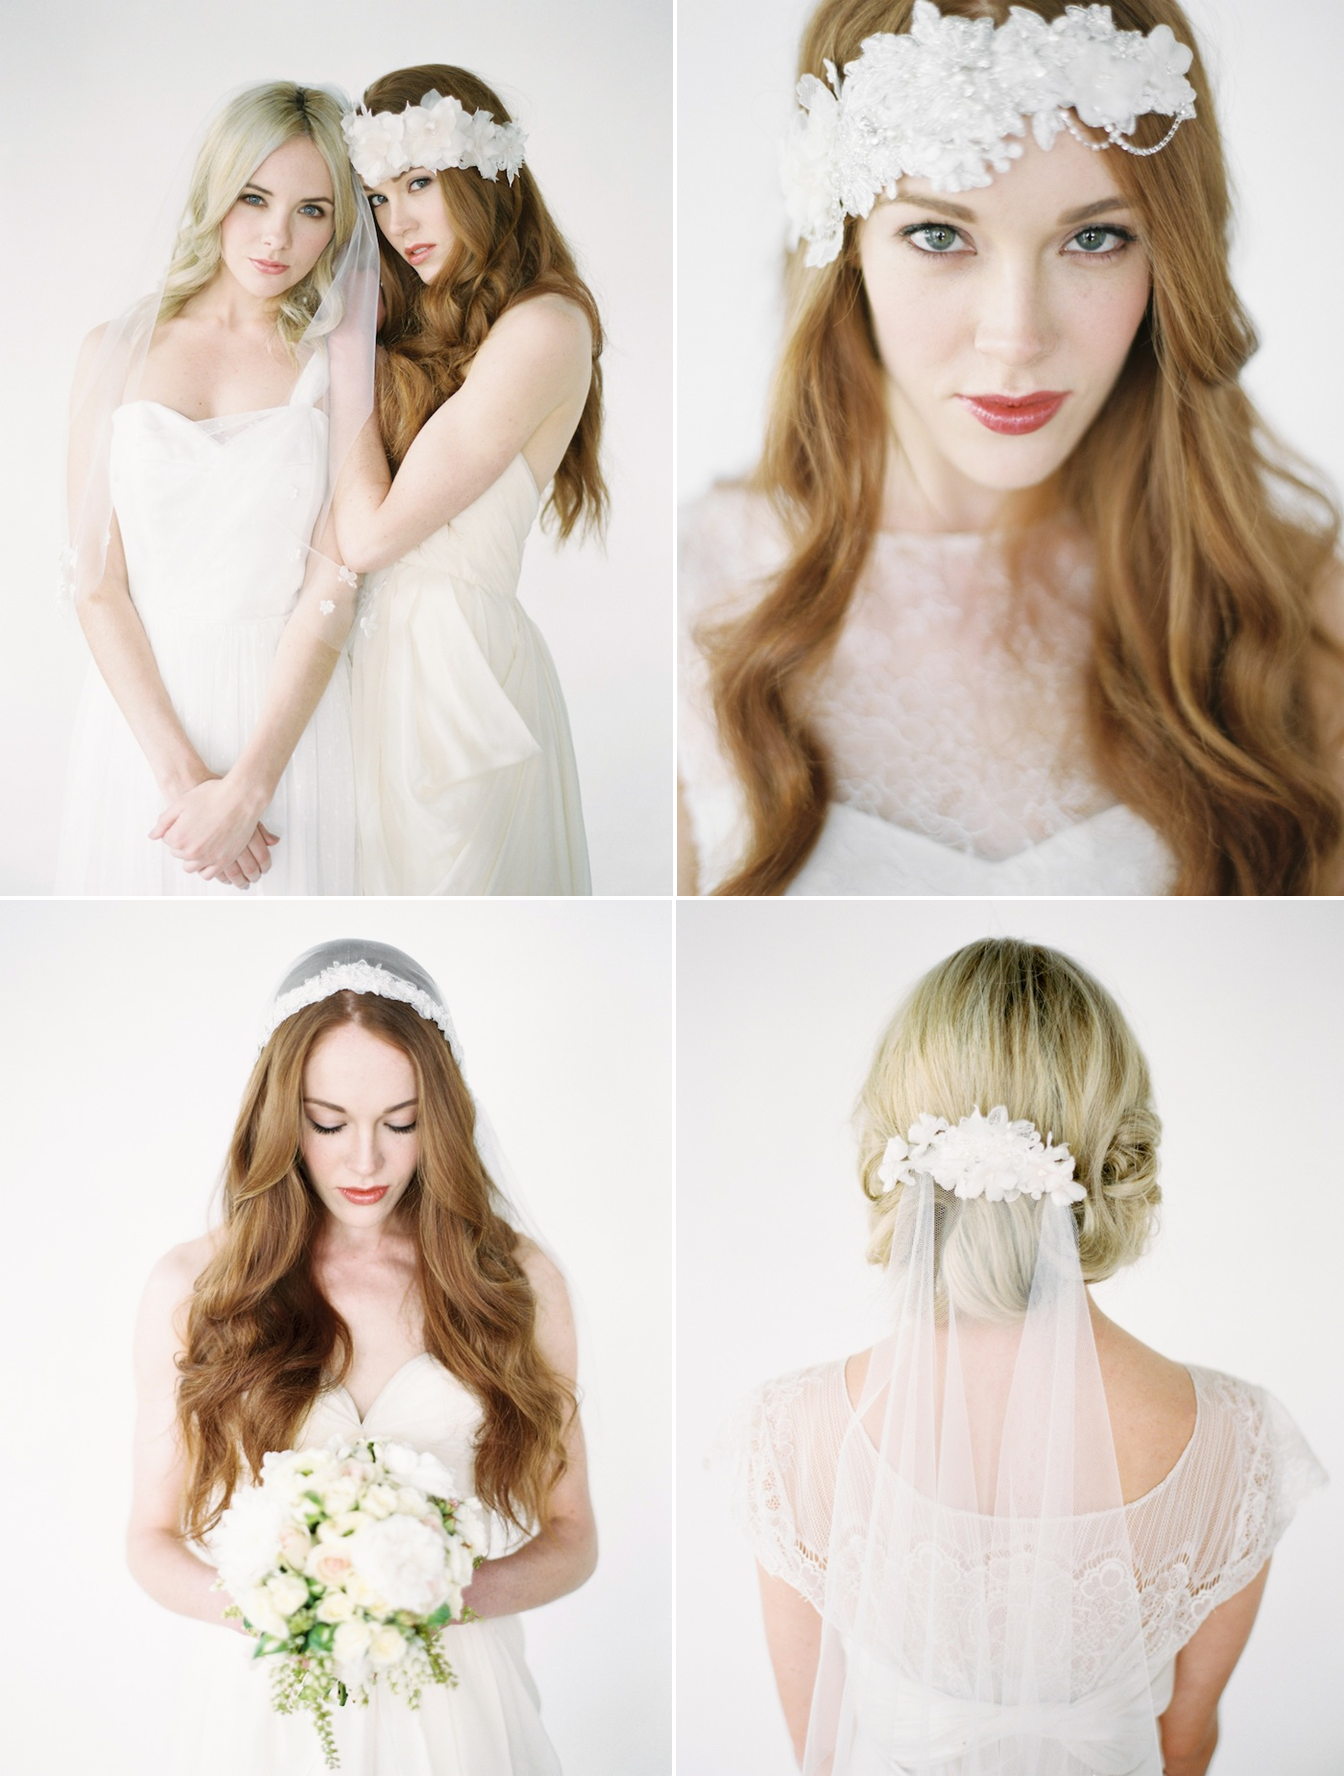 Handmade bridal veils and headpieces by Percy Handmade - Absolutely gorgeous! http://www.theperfectpalette.com/2013/10/sponsored-percy-handmade.html